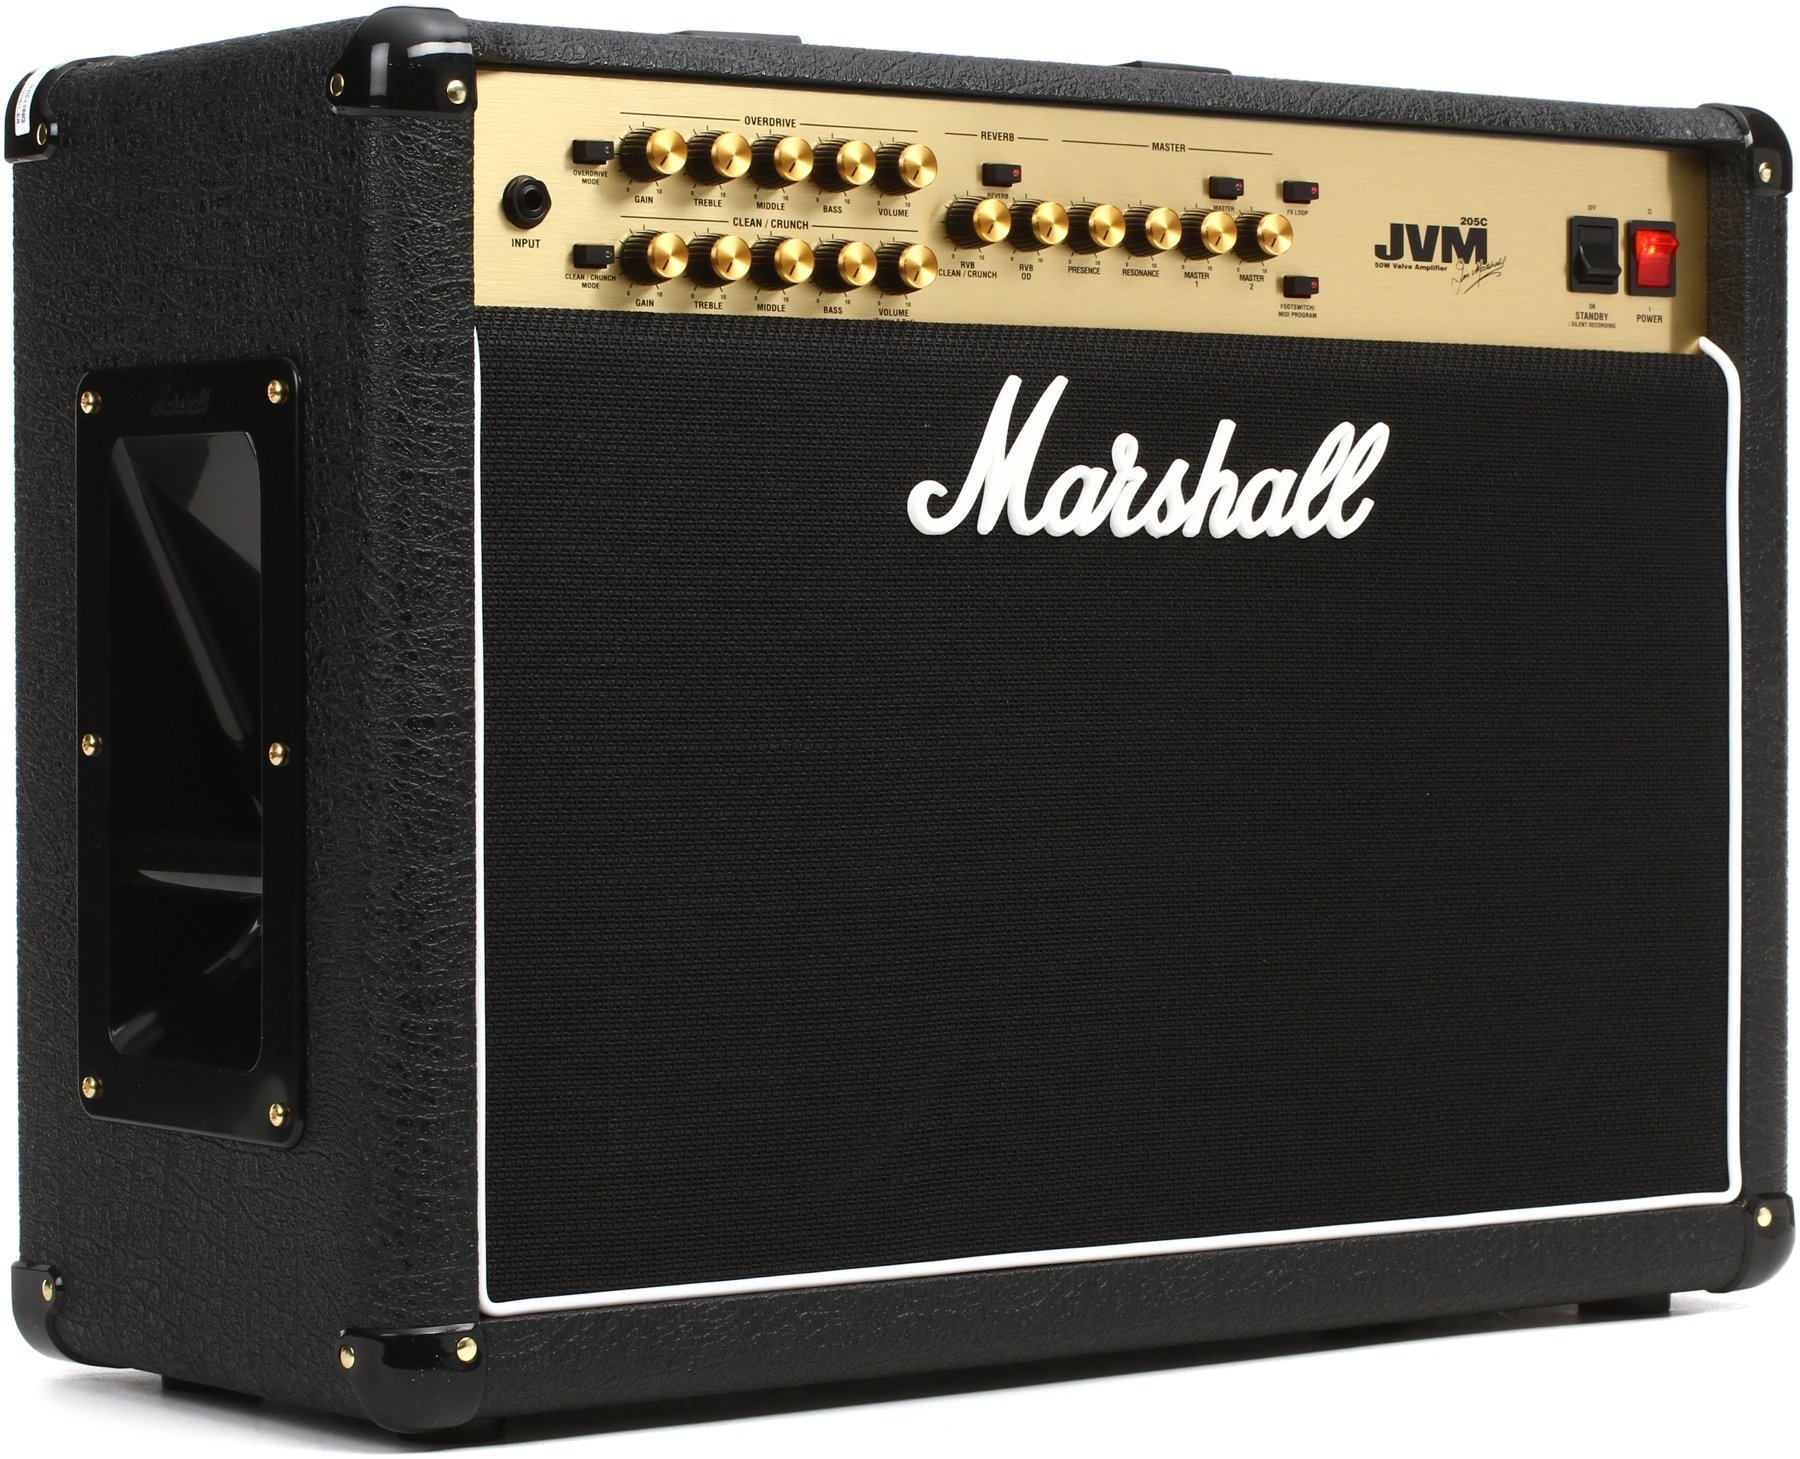 Marshall Jvm205c 50 Watt 2x12 2 Channel Tube Combo Amp Sweetwater Amplifier Image 1